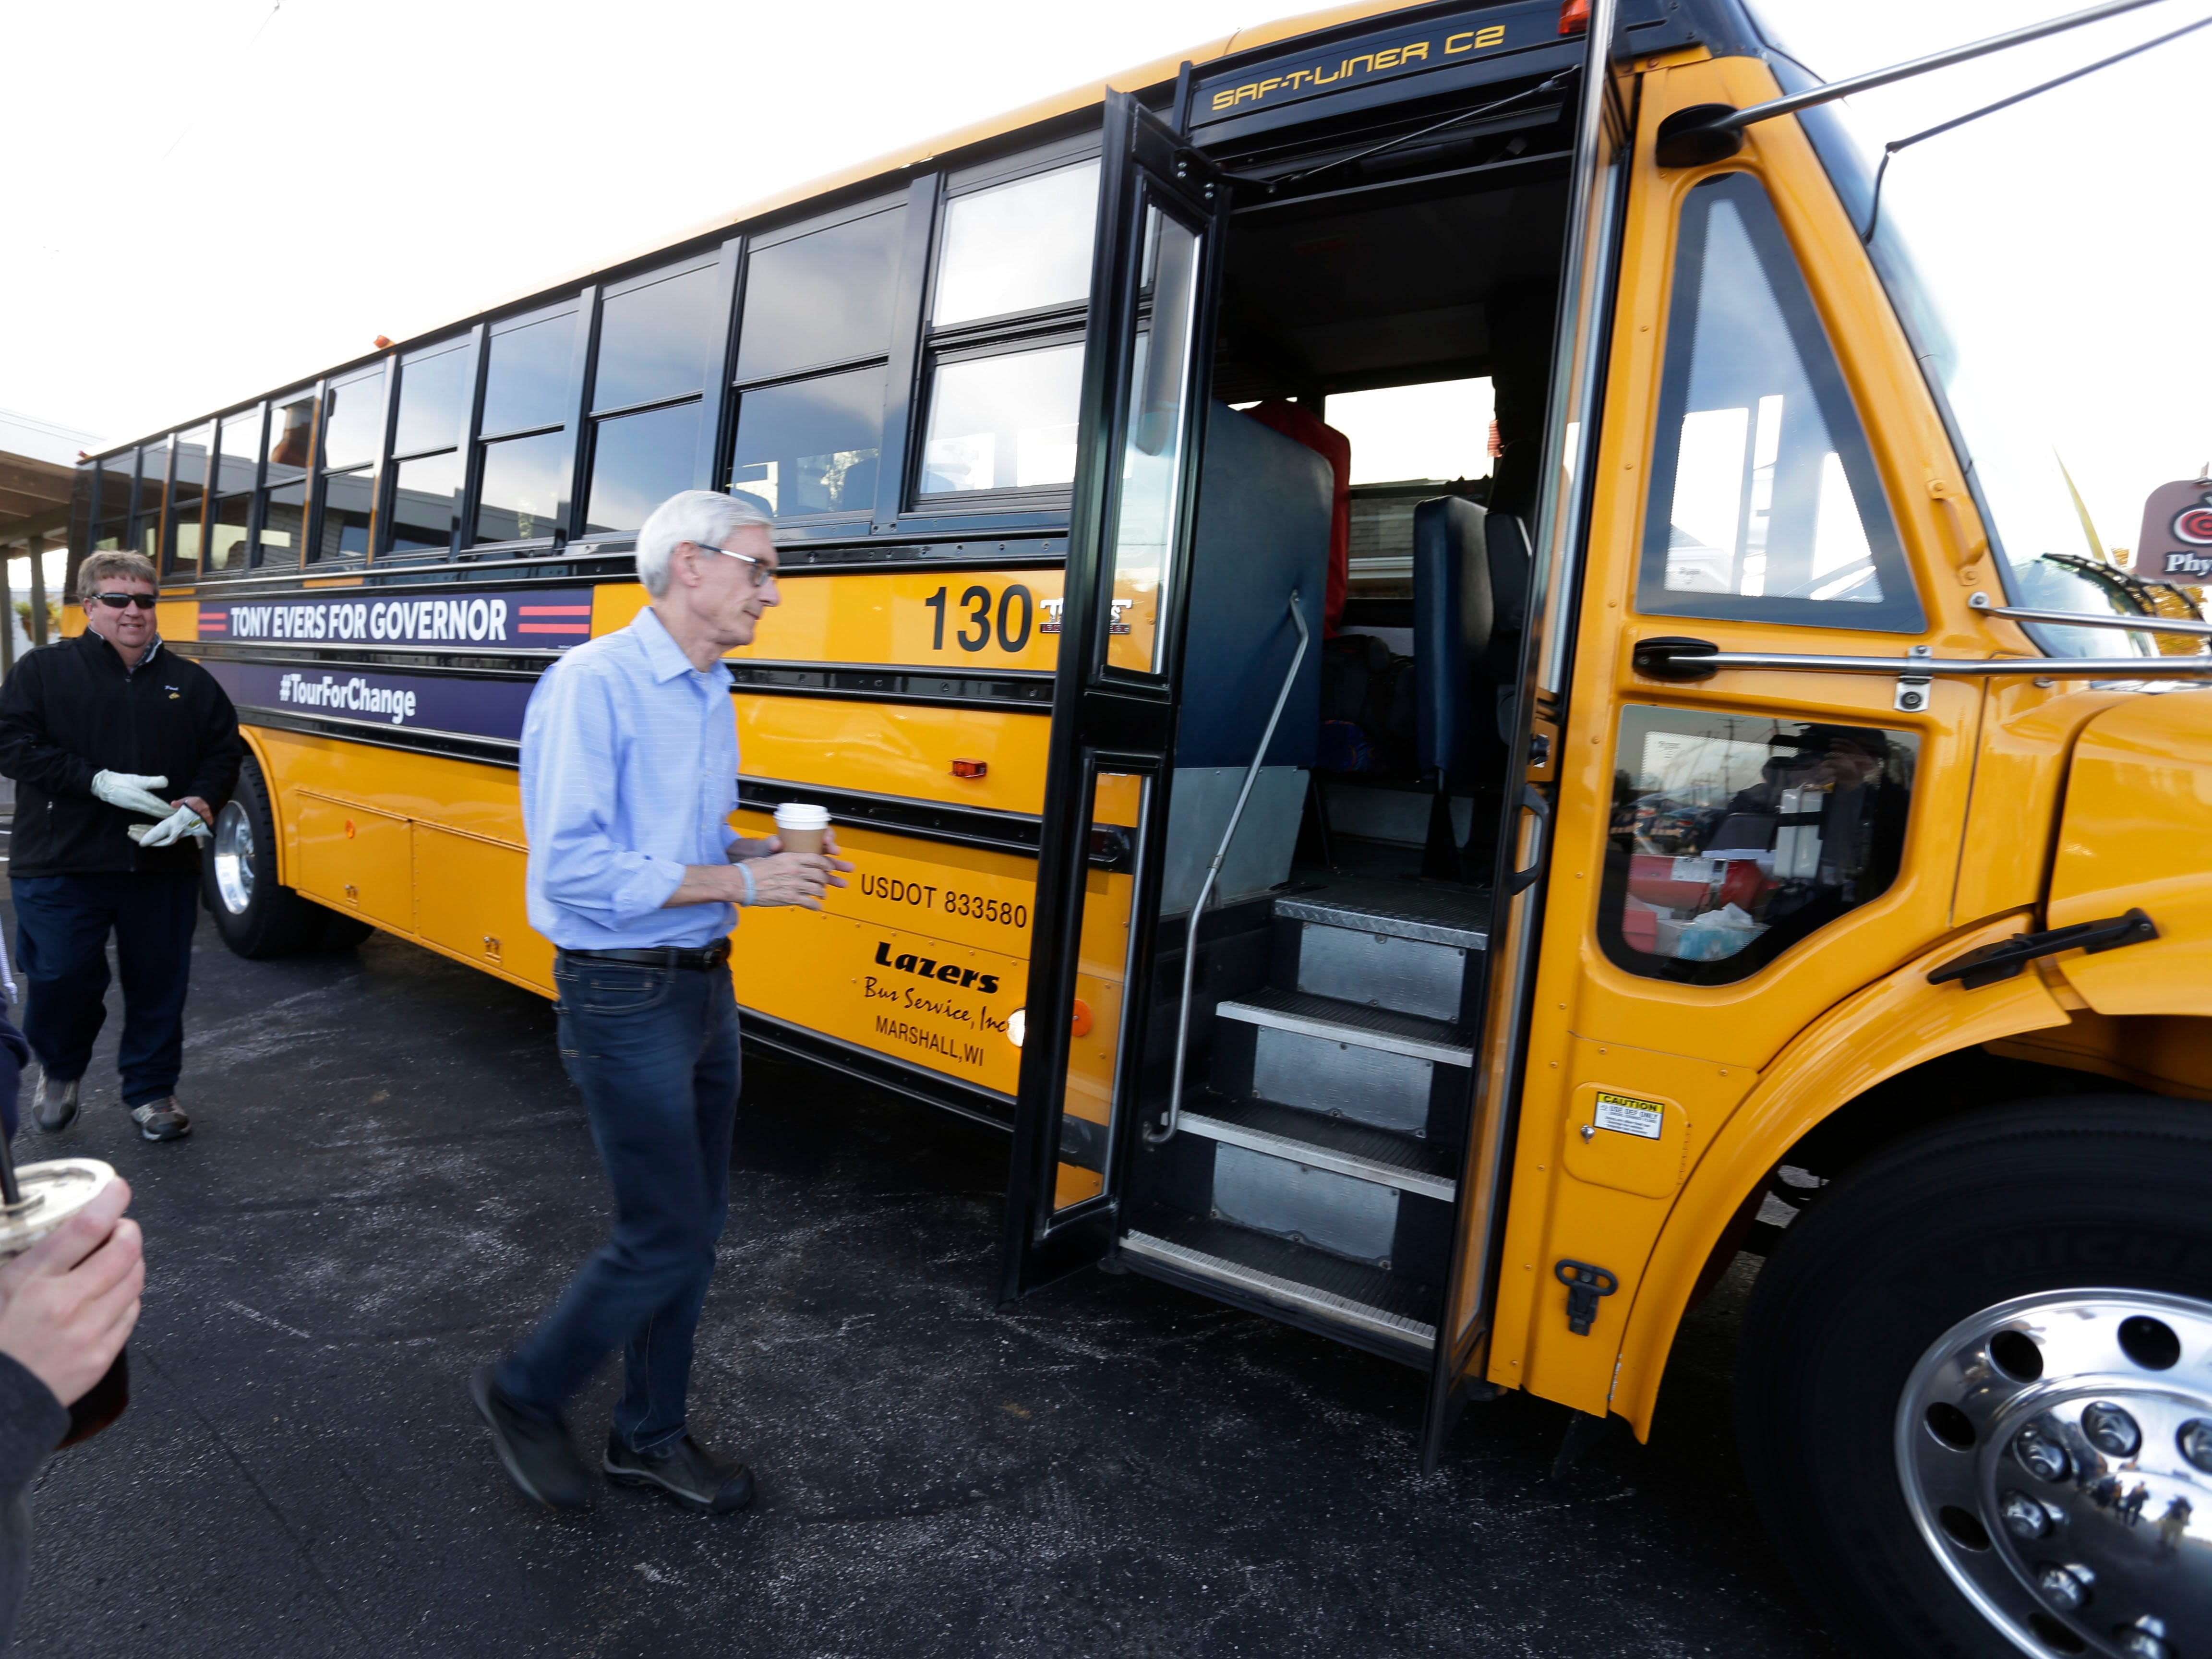 Gubernatorial candidate and Plymouth native Tony Evers, enters a school bus following a campaign stop at The Hub coffee shop, Saturday, November 3, 2018, in Plymouth, Wis.